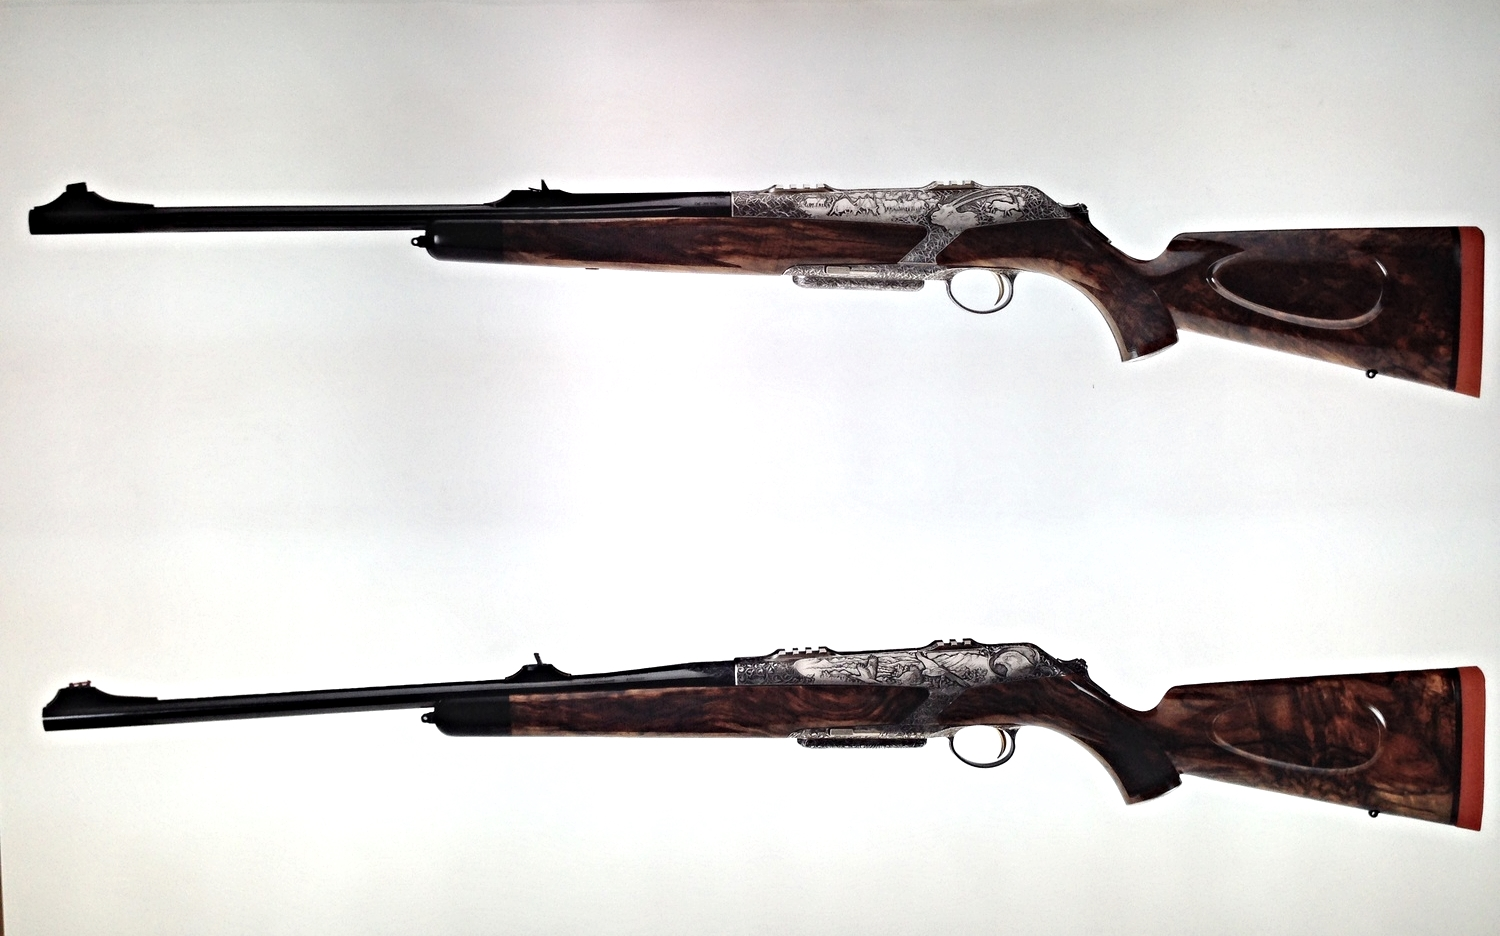 Custom-made rifles by Austrian gunsmiths Fuchs Fine Guns at Adihex 2014.